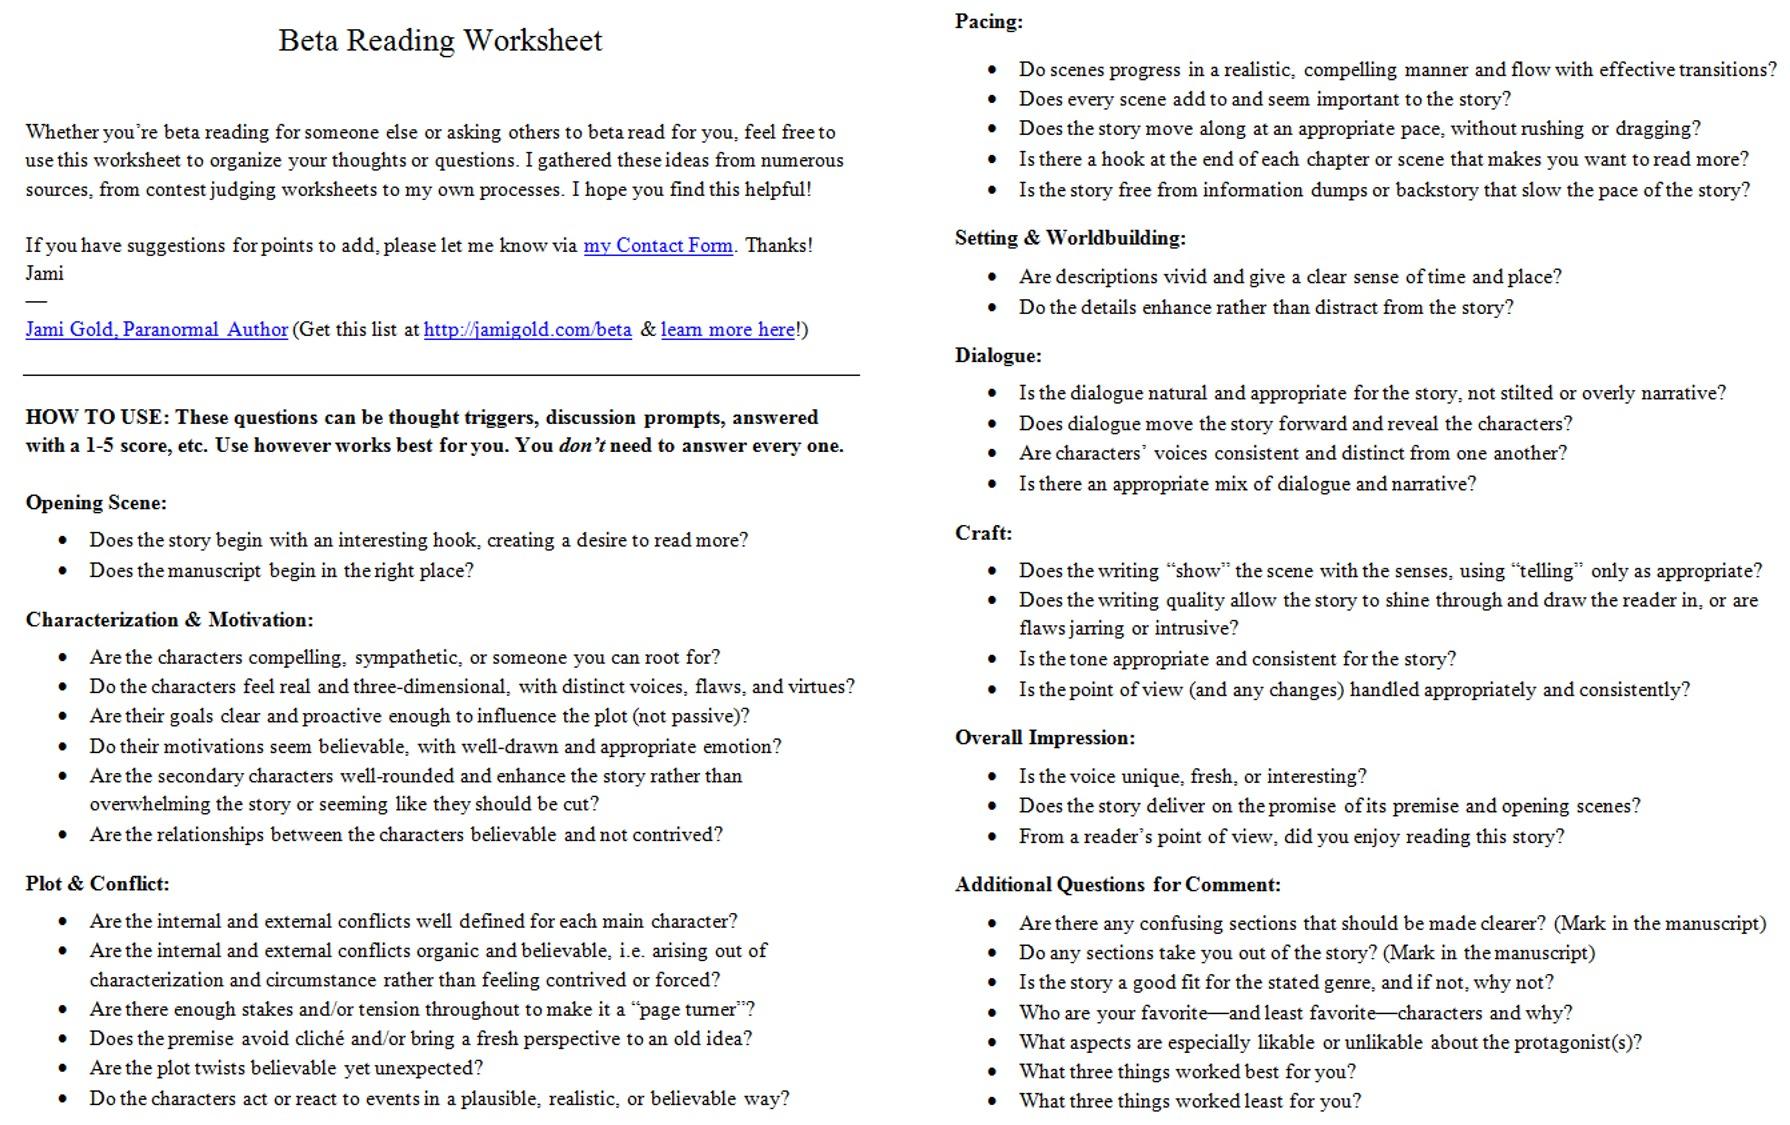 Aldiablosus  Fascinating Worksheets For Writers  Jami Gold Paranormal Author With Outstanding Screen Shot Of The Twopage Beta Reading Worksheet With Amazing Hot And Cold Worksheets Also Adjectives Worksheets For Nd Grade In Addition Measuring Math Worksheets And Main Idea Worksheets For Second Grade As Well As Computers Inside And Out Worksheet Answers Additionally Kuta Software Infinite Algebra  Worksheet From Jamigoldcom With Aldiablosus  Outstanding Worksheets For Writers  Jami Gold Paranormal Author With Amazing Screen Shot Of The Twopage Beta Reading Worksheet And Fascinating Hot And Cold Worksheets Also Adjectives Worksheets For Nd Grade In Addition Measuring Math Worksheets From Jamigoldcom